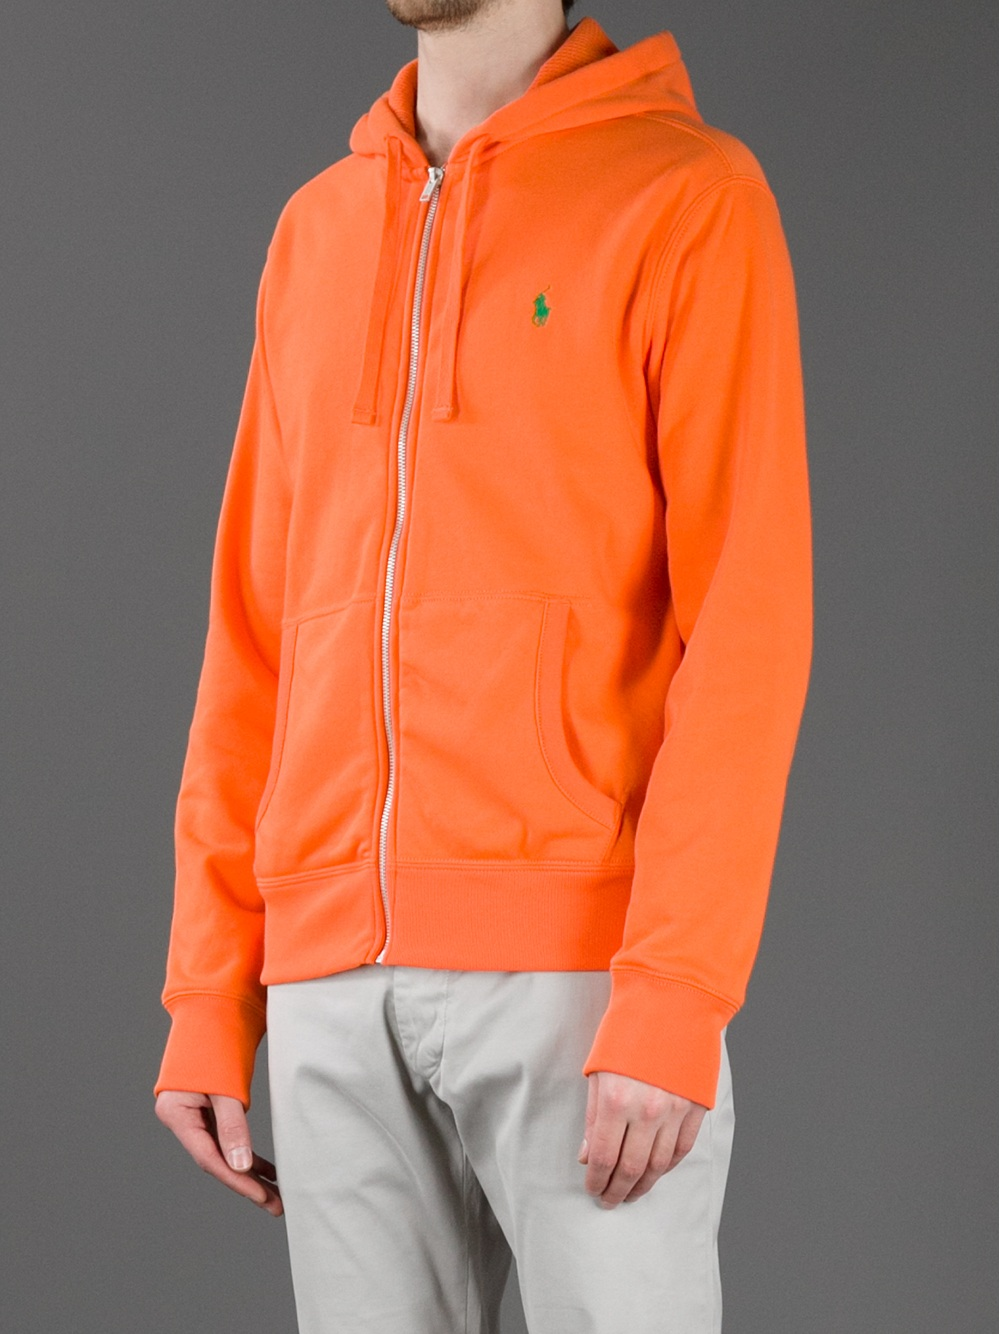 Purchase Ralph Orange Lauren Hoodie 79b17 Ce9be 2DIEH9